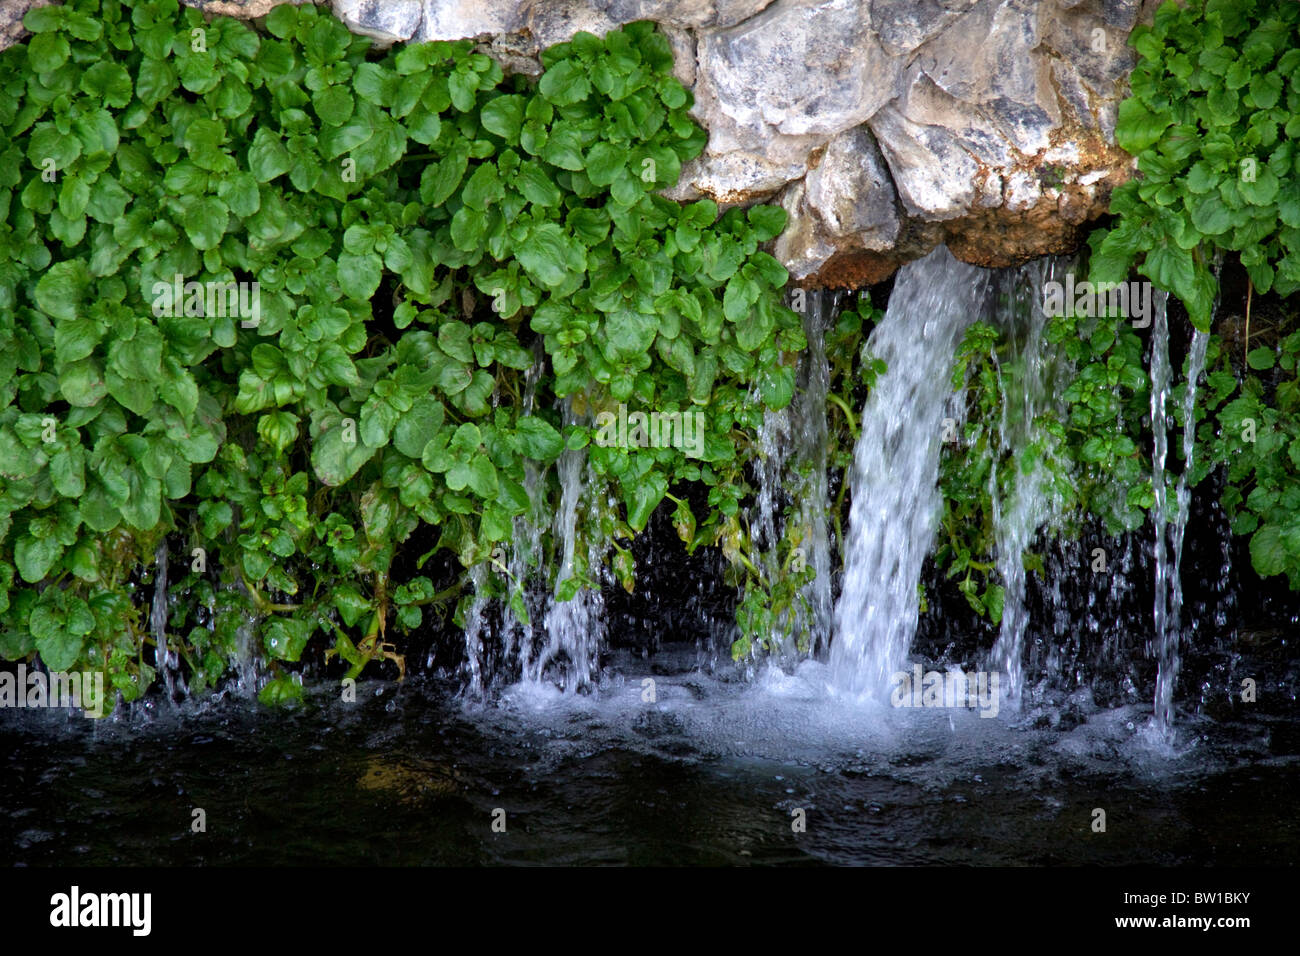 watercress growing on rock with natural spring water flowing at